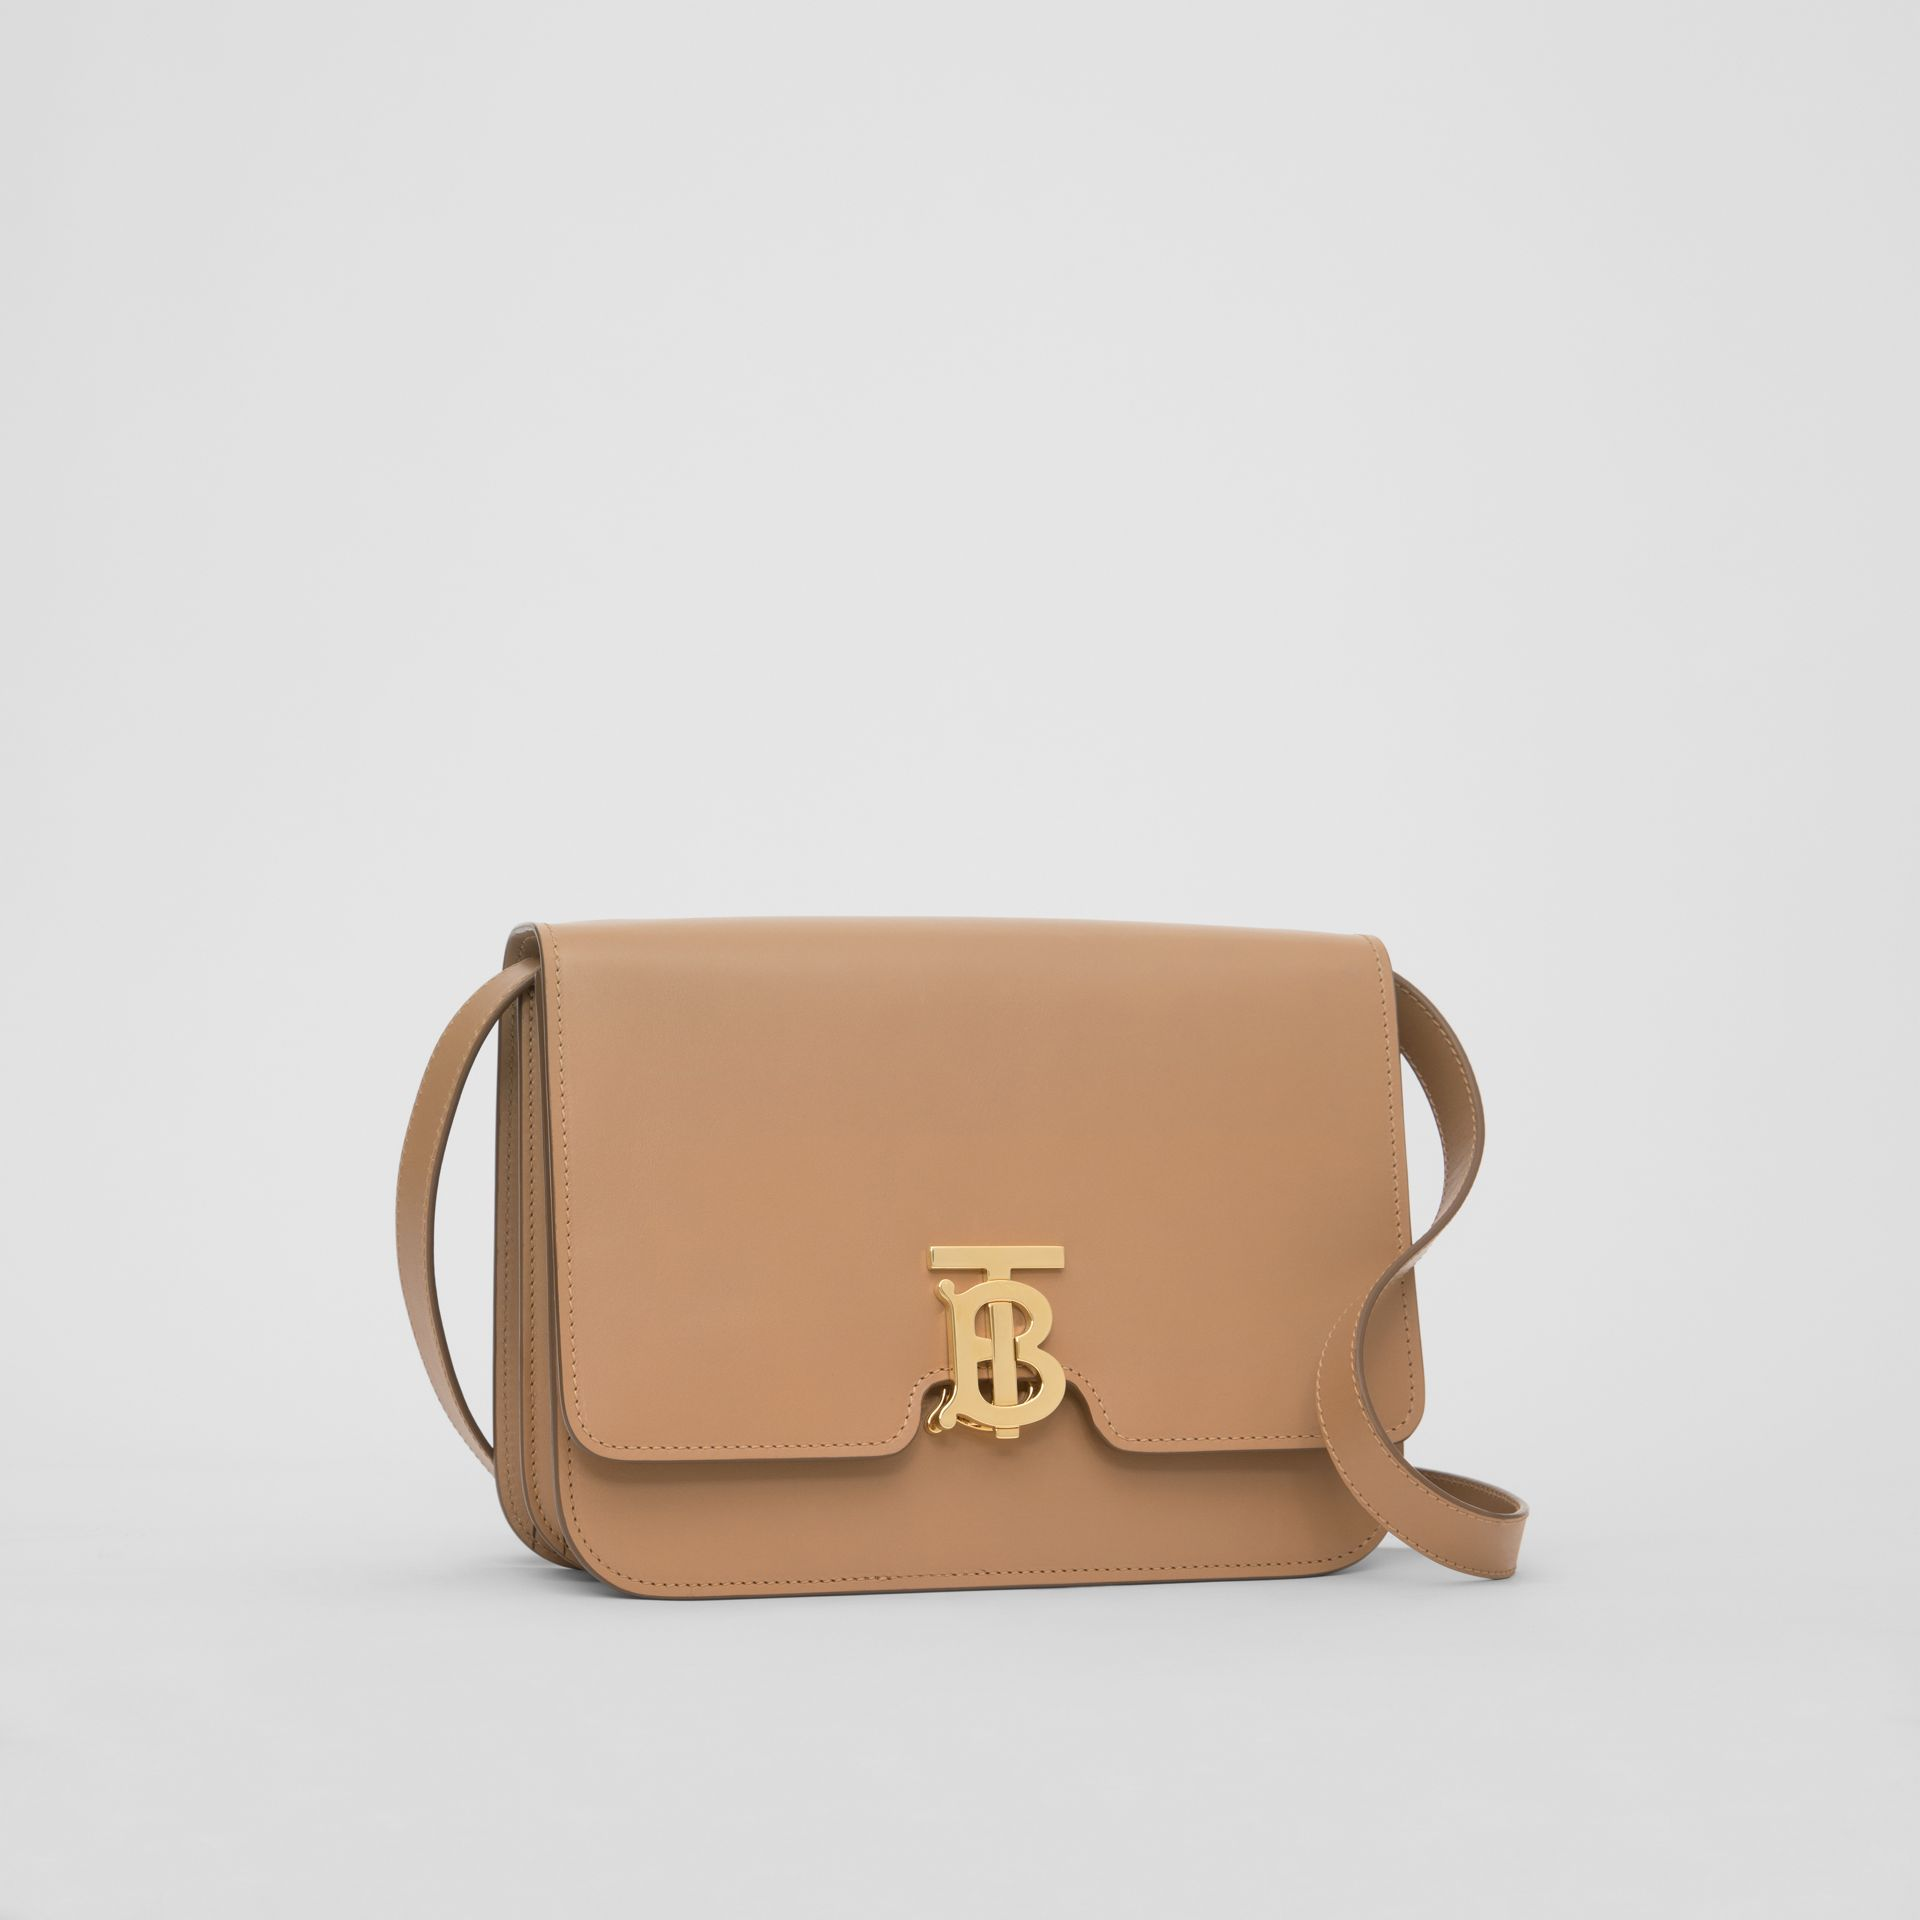 Medium Leather TB Bag in Light Camel - Women | Burberry Hong Kong - gallery image 3